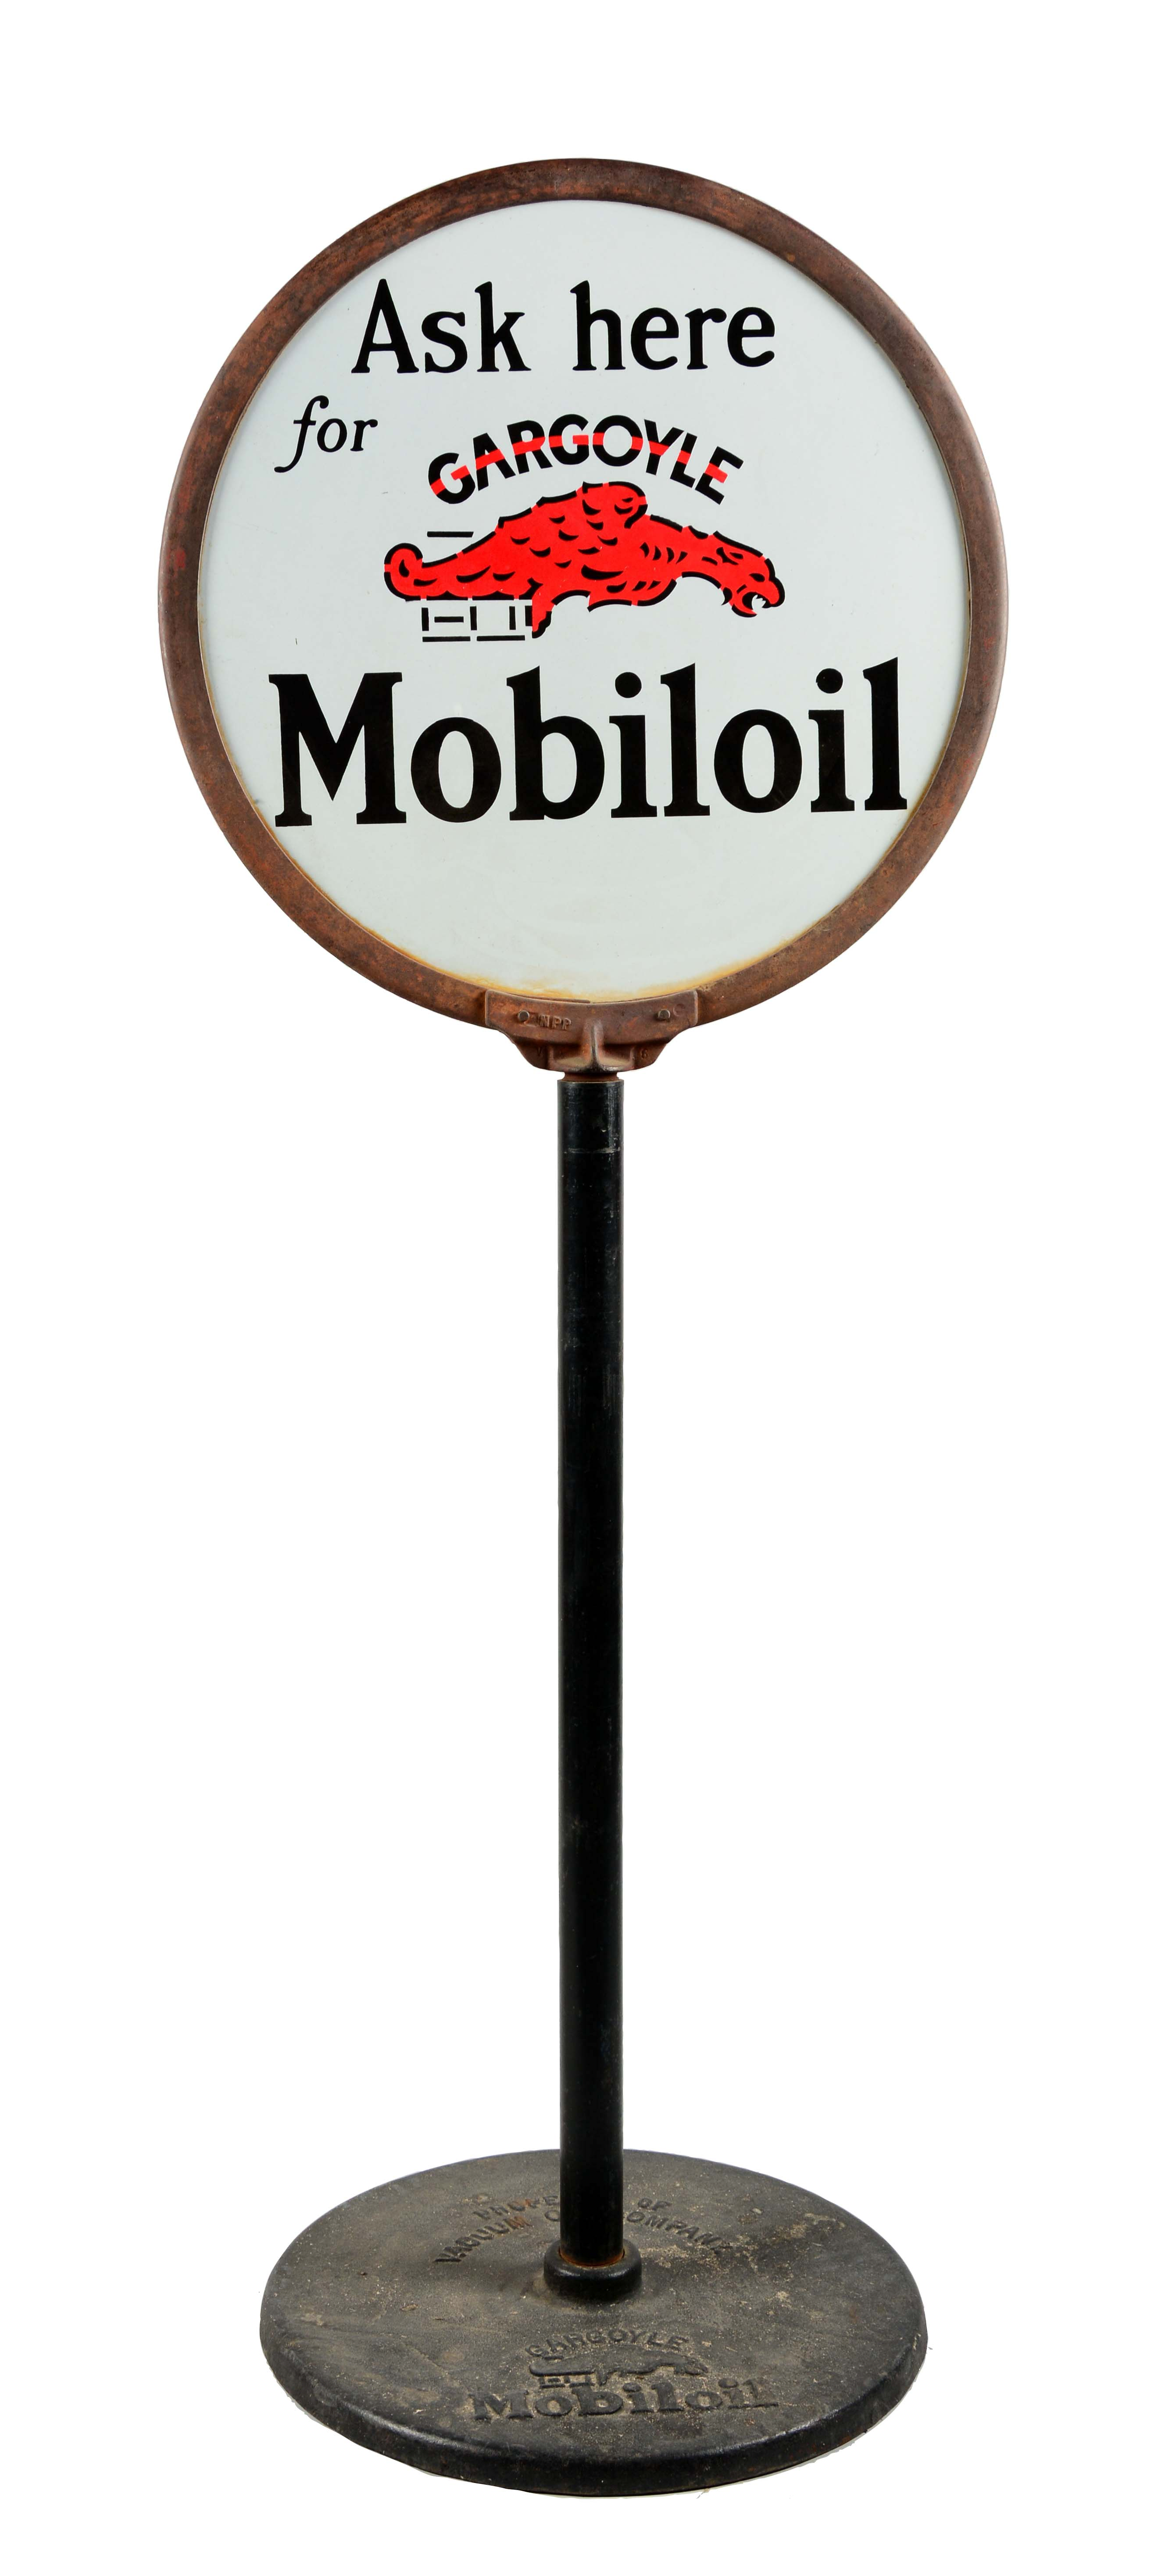 Gas Prices Las Vegas >> Lot Detail - Mobiloil Ask Here For Gargoyle Mobiloil Porcelain Lollipop Sign.